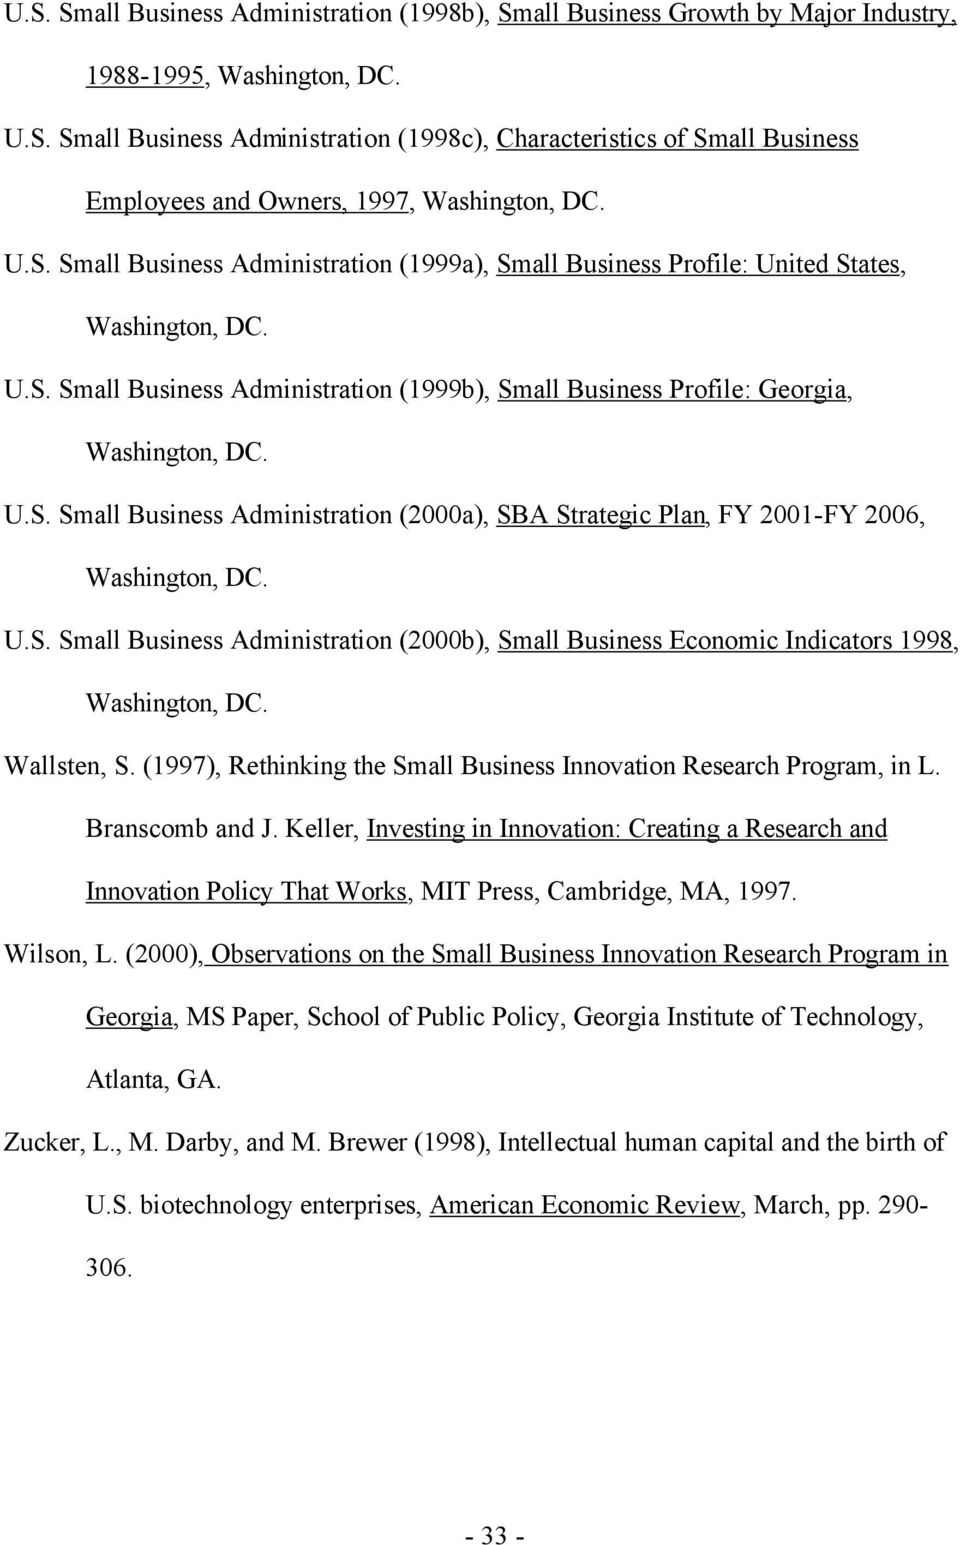 U.S. Small Business Administration (2000b), Small Business Economic Indicators 1998, Washington, DC. Wallsten, S. (1997), Rethinking the Small Business Innovation Research Program, in L.